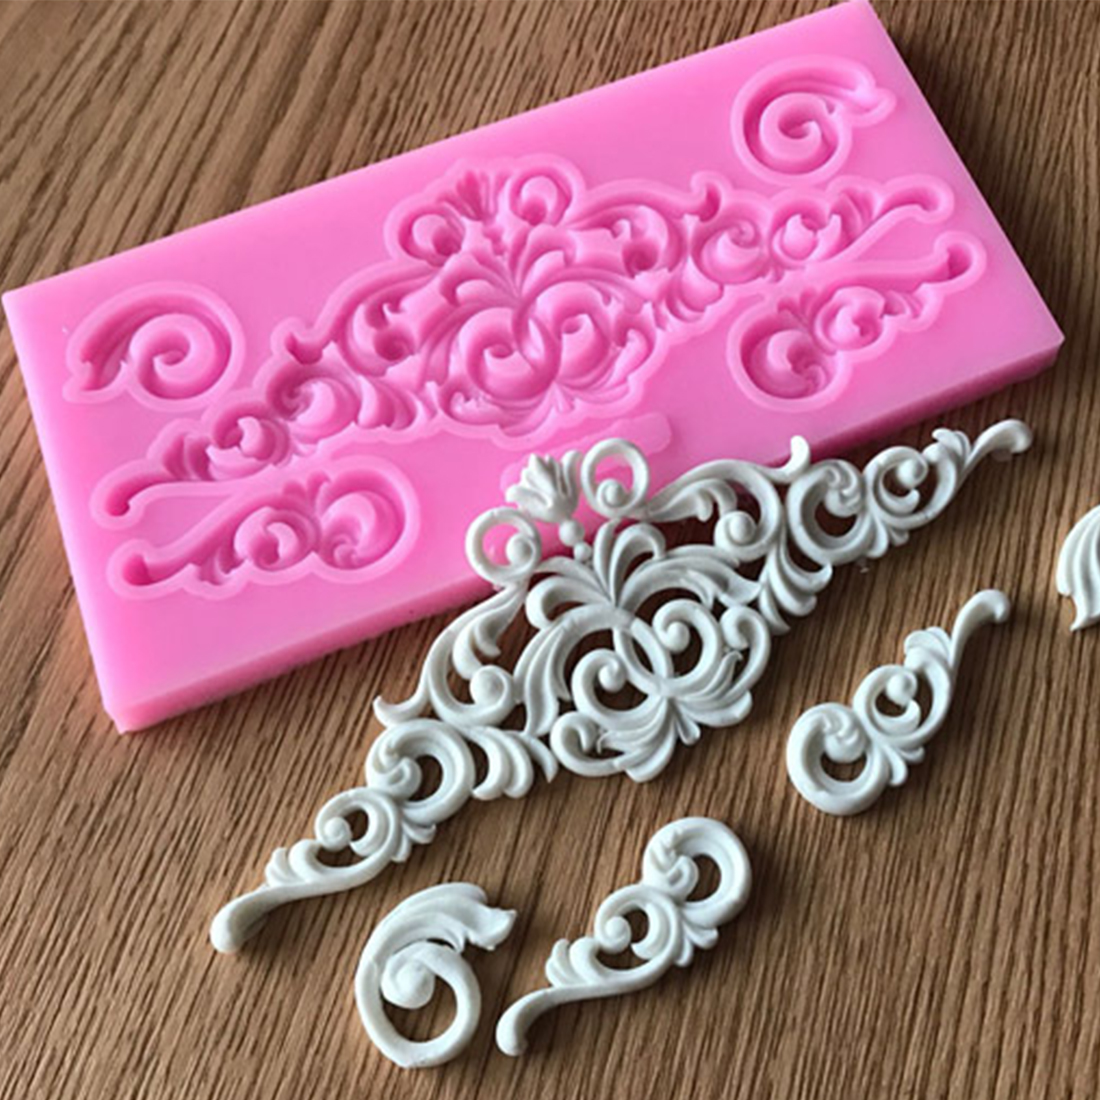 Hot Sale DIY Sugar craft <font><b>Cake</b></font> Vintage Relief Border <font><b>Silicone</b></font> <font><b>Mold</b></font> <font><b>Fondant</b></font> <font><b>Mold</b></font> <font><b>Cake</b></font> <font><b>decorating</b></font> <font><b>Tools</b></font> Gum paste <font><b>Mold</b></font> image